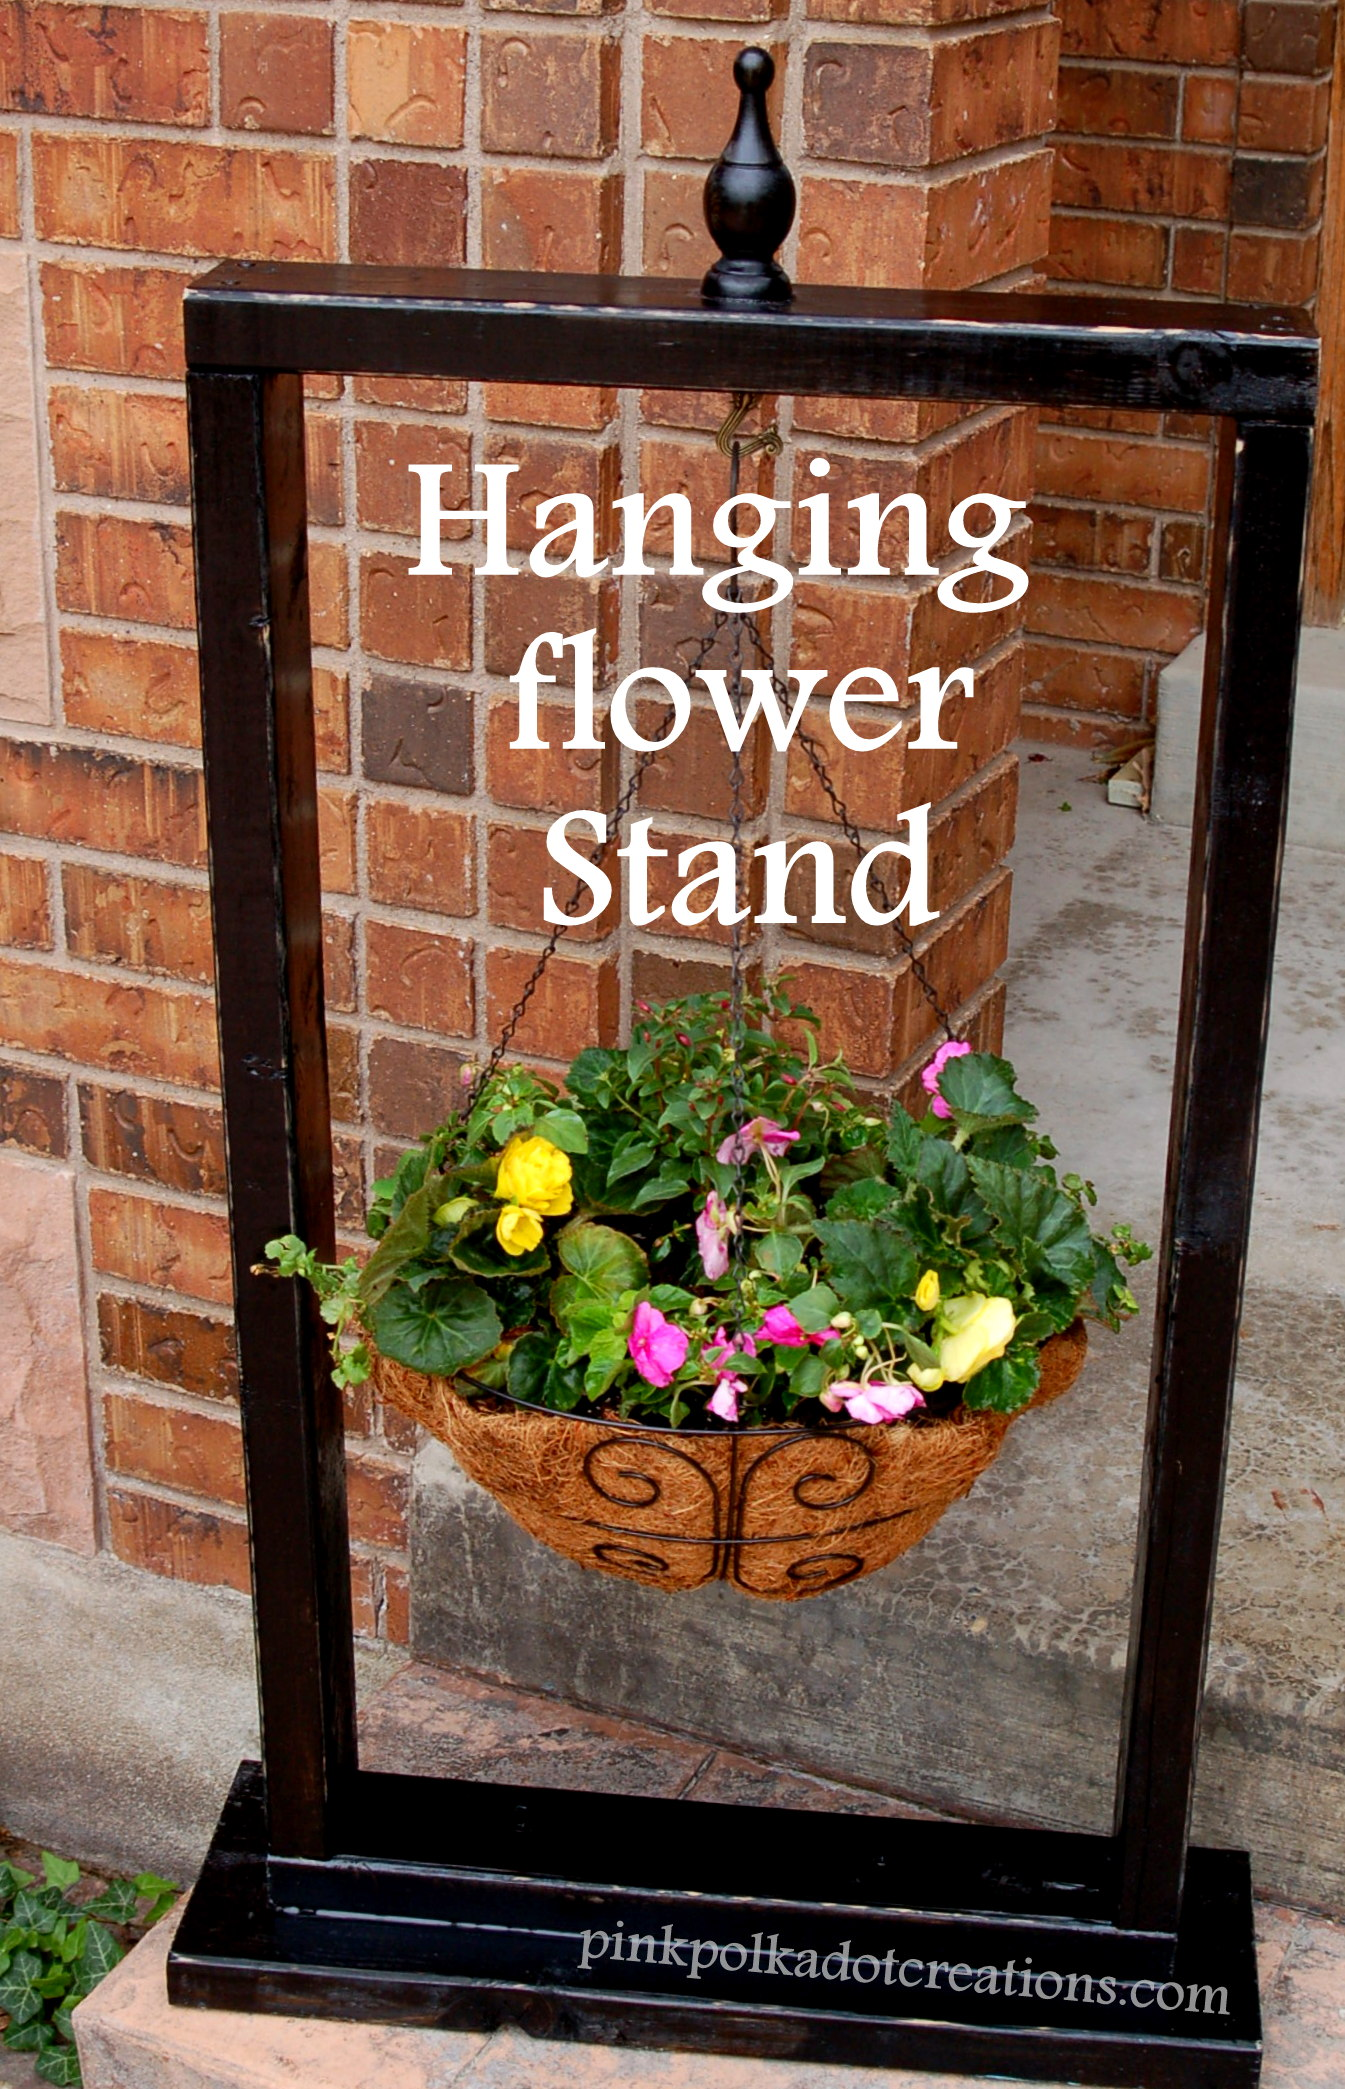 Hanging Flower Stand Pink Polka Dot Creations